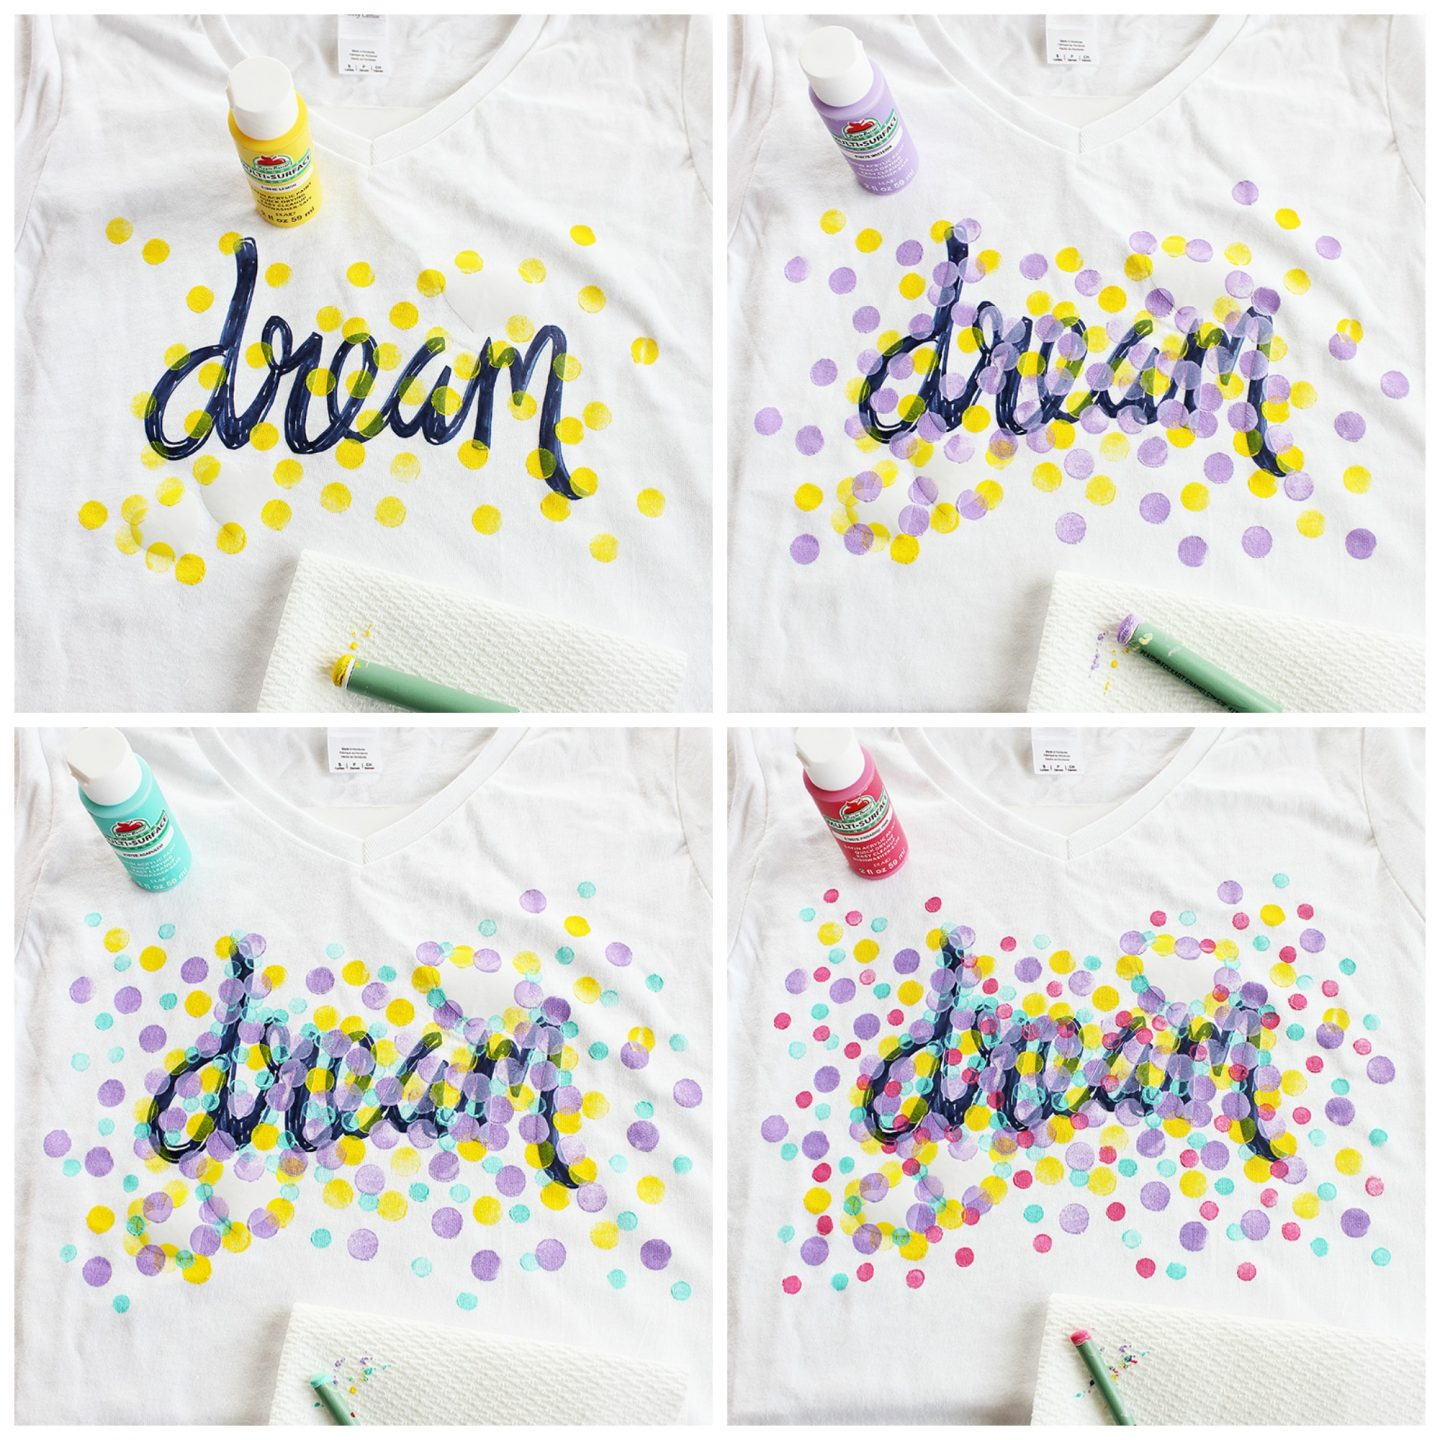 Painted Confetti Shirt with Freezer Paper Stencil